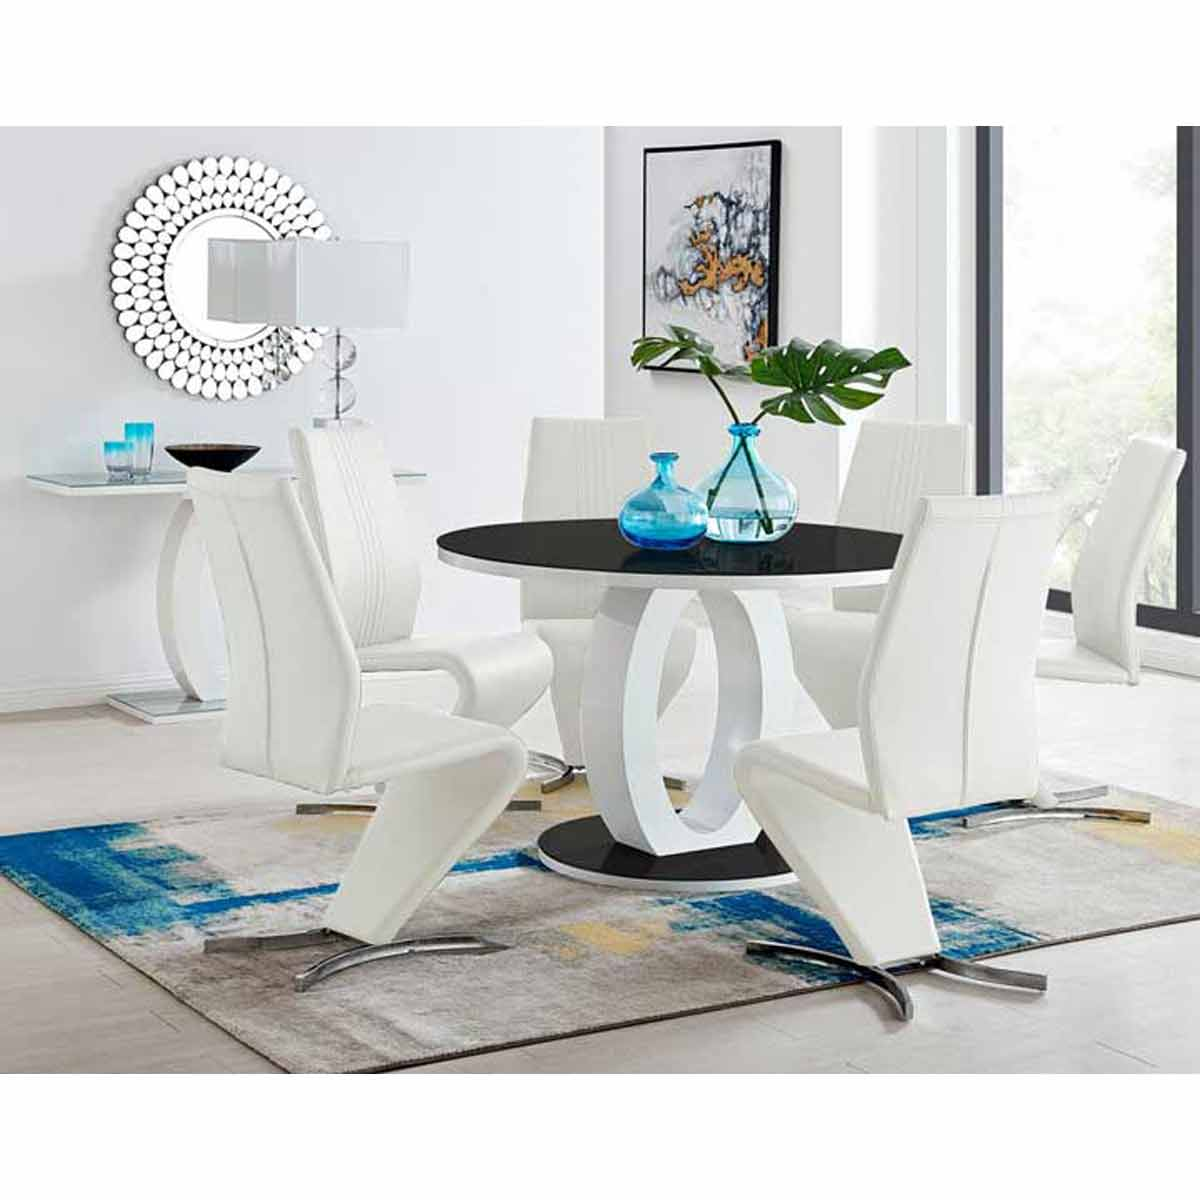 Furniture Box Giovani High Gloss And Glass Large Round Dining Table And 4 Luxury White Willow Dining Chairs Set